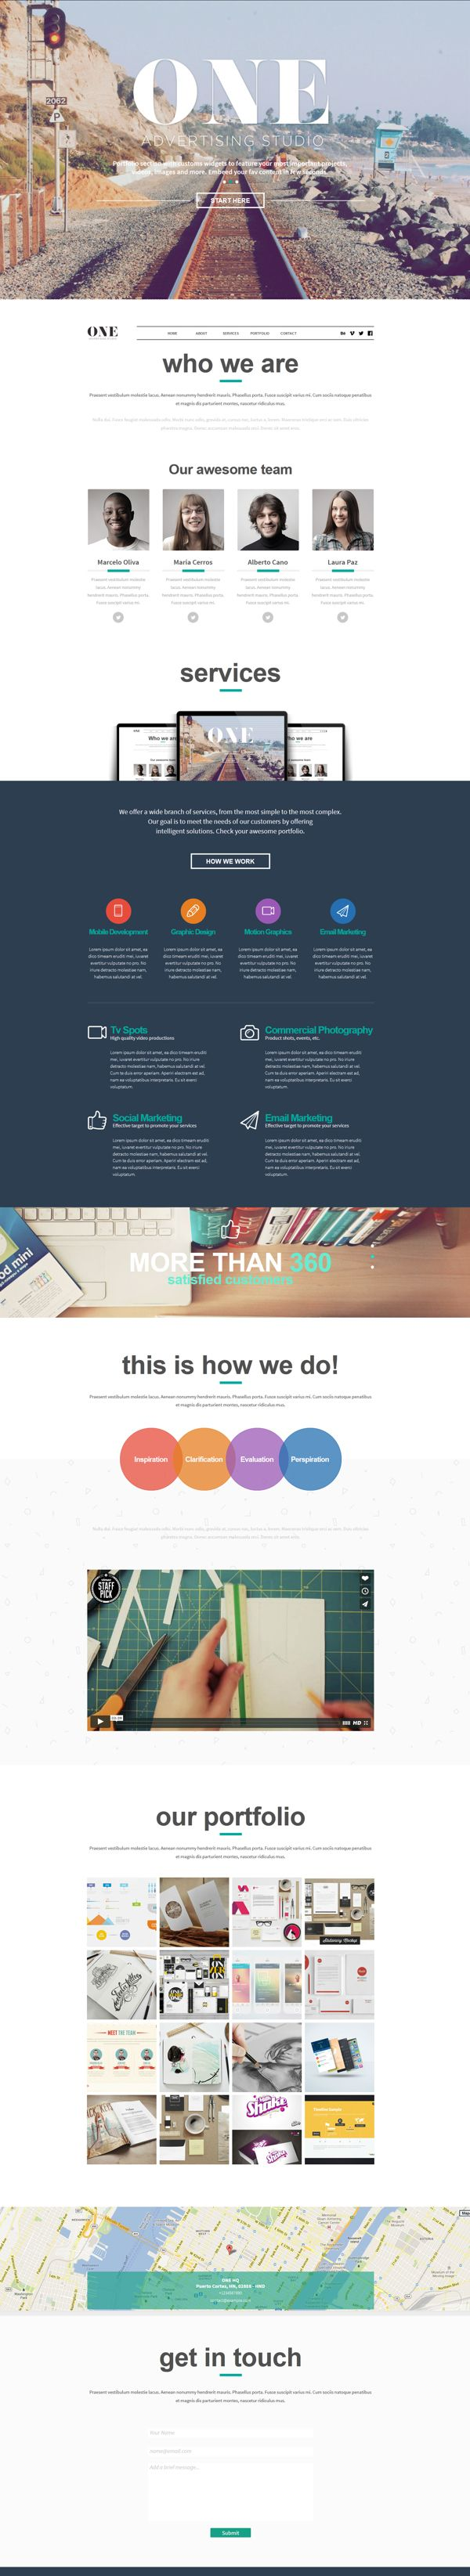 ONE - Adobe Muse Theme by Eduardo Mejia, via Behance